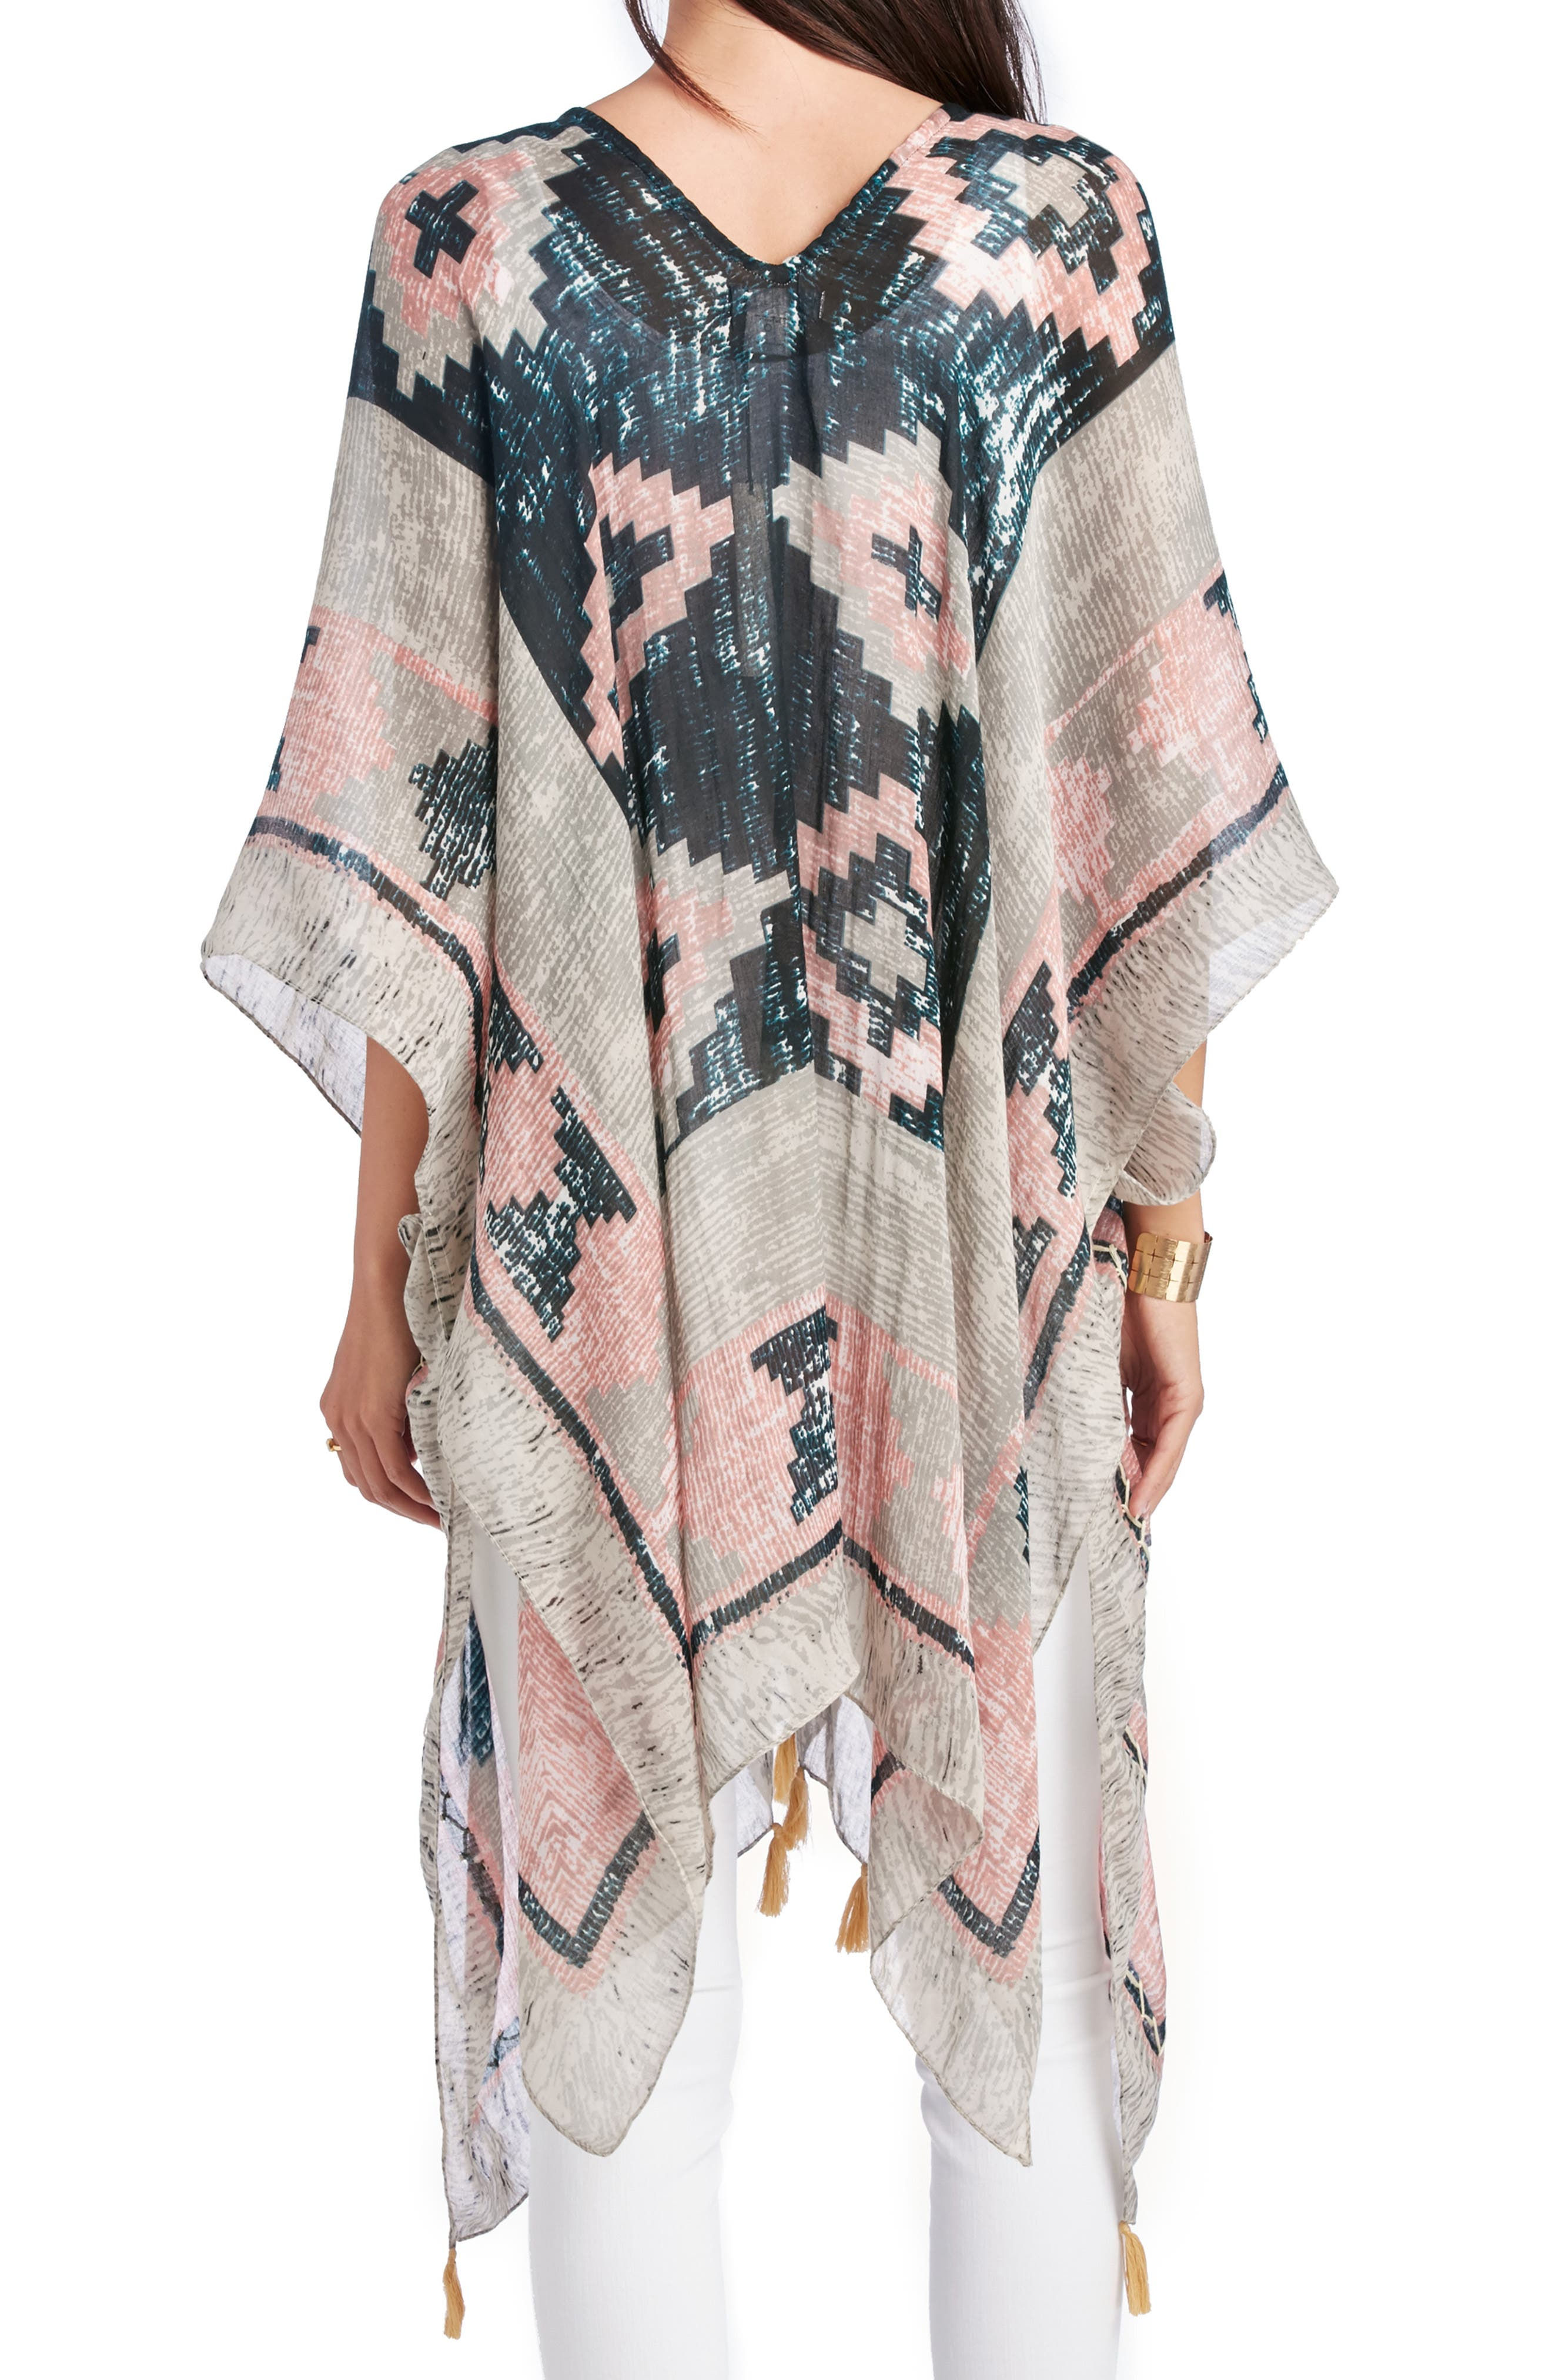 SOLE SOCIETY, Geo Print Tassel Caftan, Alternate thumbnail 2, color, MULTI